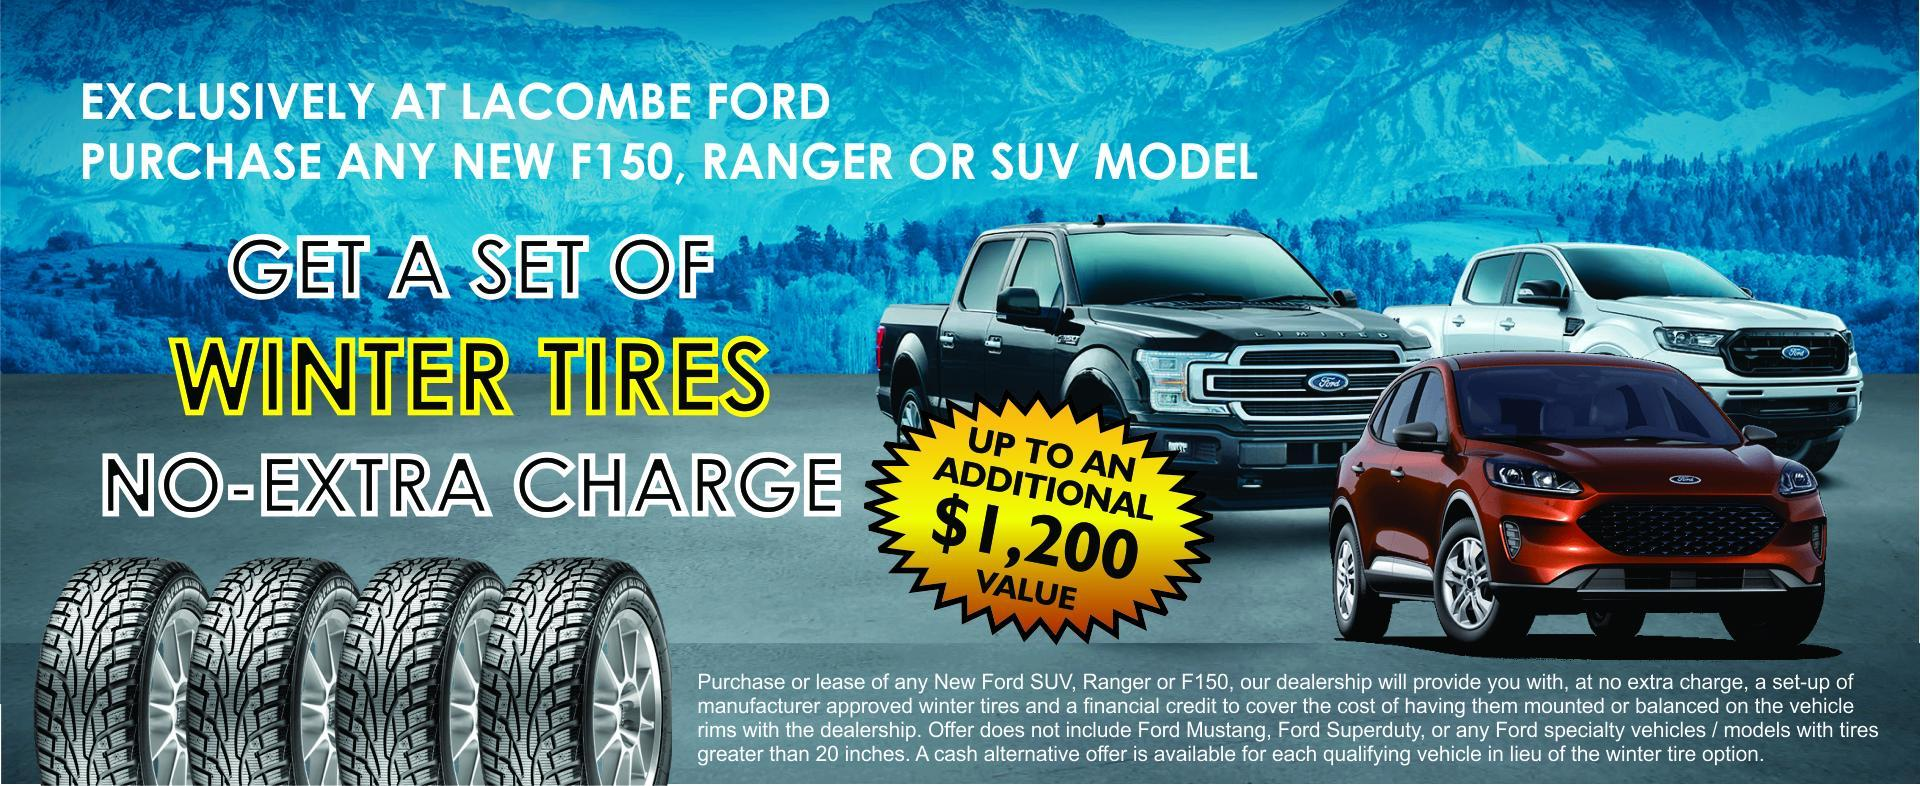 FREE SET OF WINTER TIRES WITH SELECT NEW VEHICLE PURCHASE AT LACOMBE FORD ALBERTA